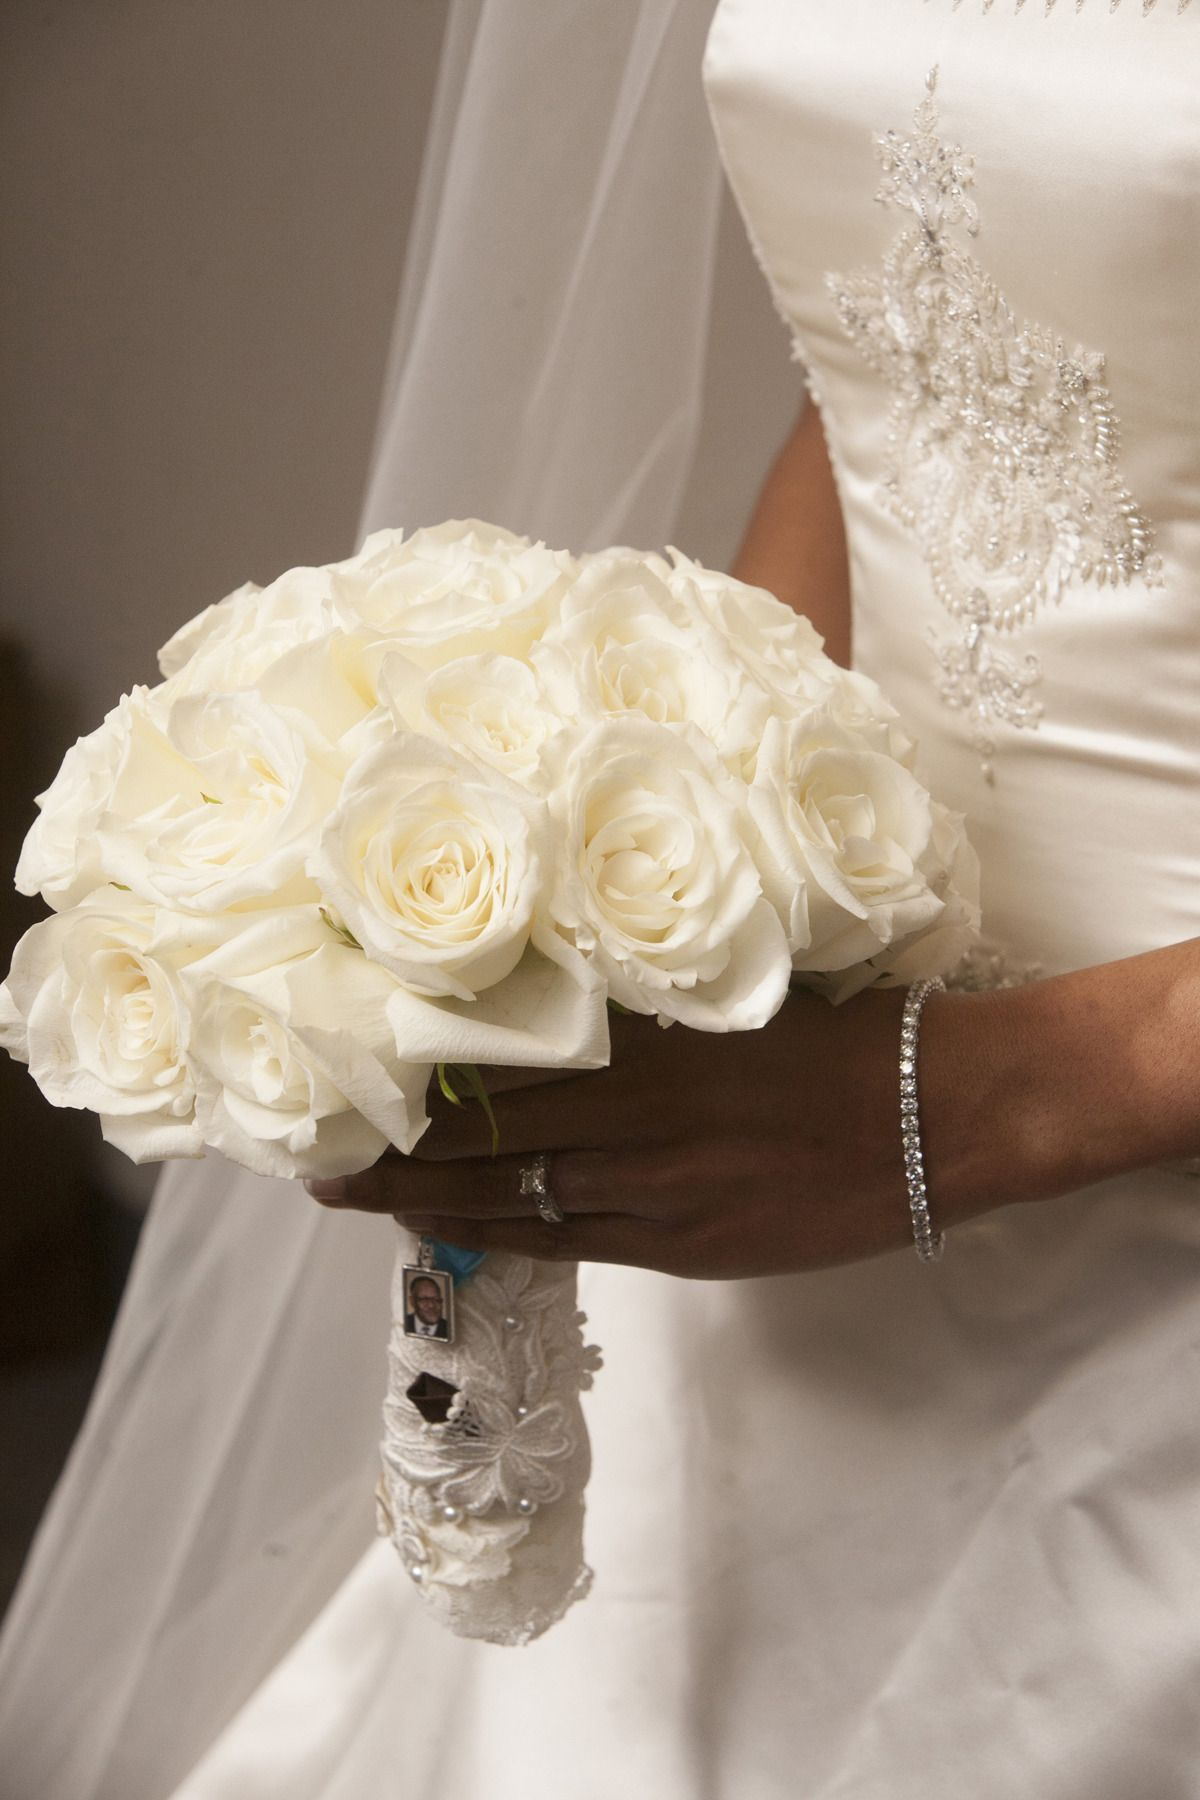 Creamy White Roses -- Timeless and Classic Wedding Bouquet. Nhan Photography | See more on SMP: http://www.StyleMePretty.com/southwest-weddings/2014/03/07/winter-wedding-at-the-crystal-ballroom/